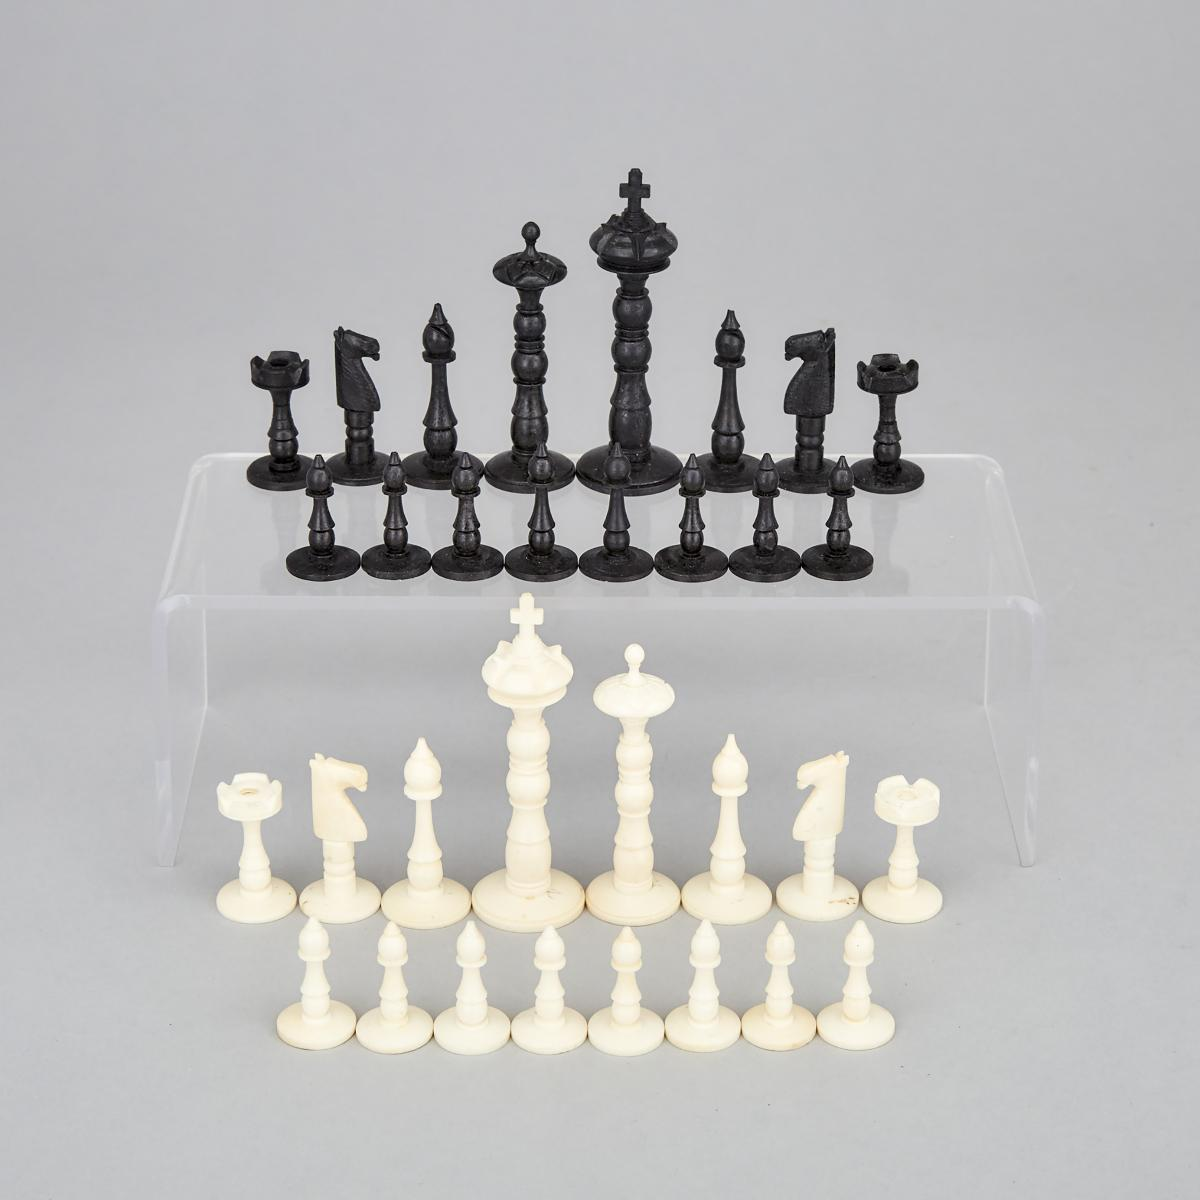 Indian Camel Bone Chess Set, early-mid 20th century, height 3.5 in — 8.9 cm